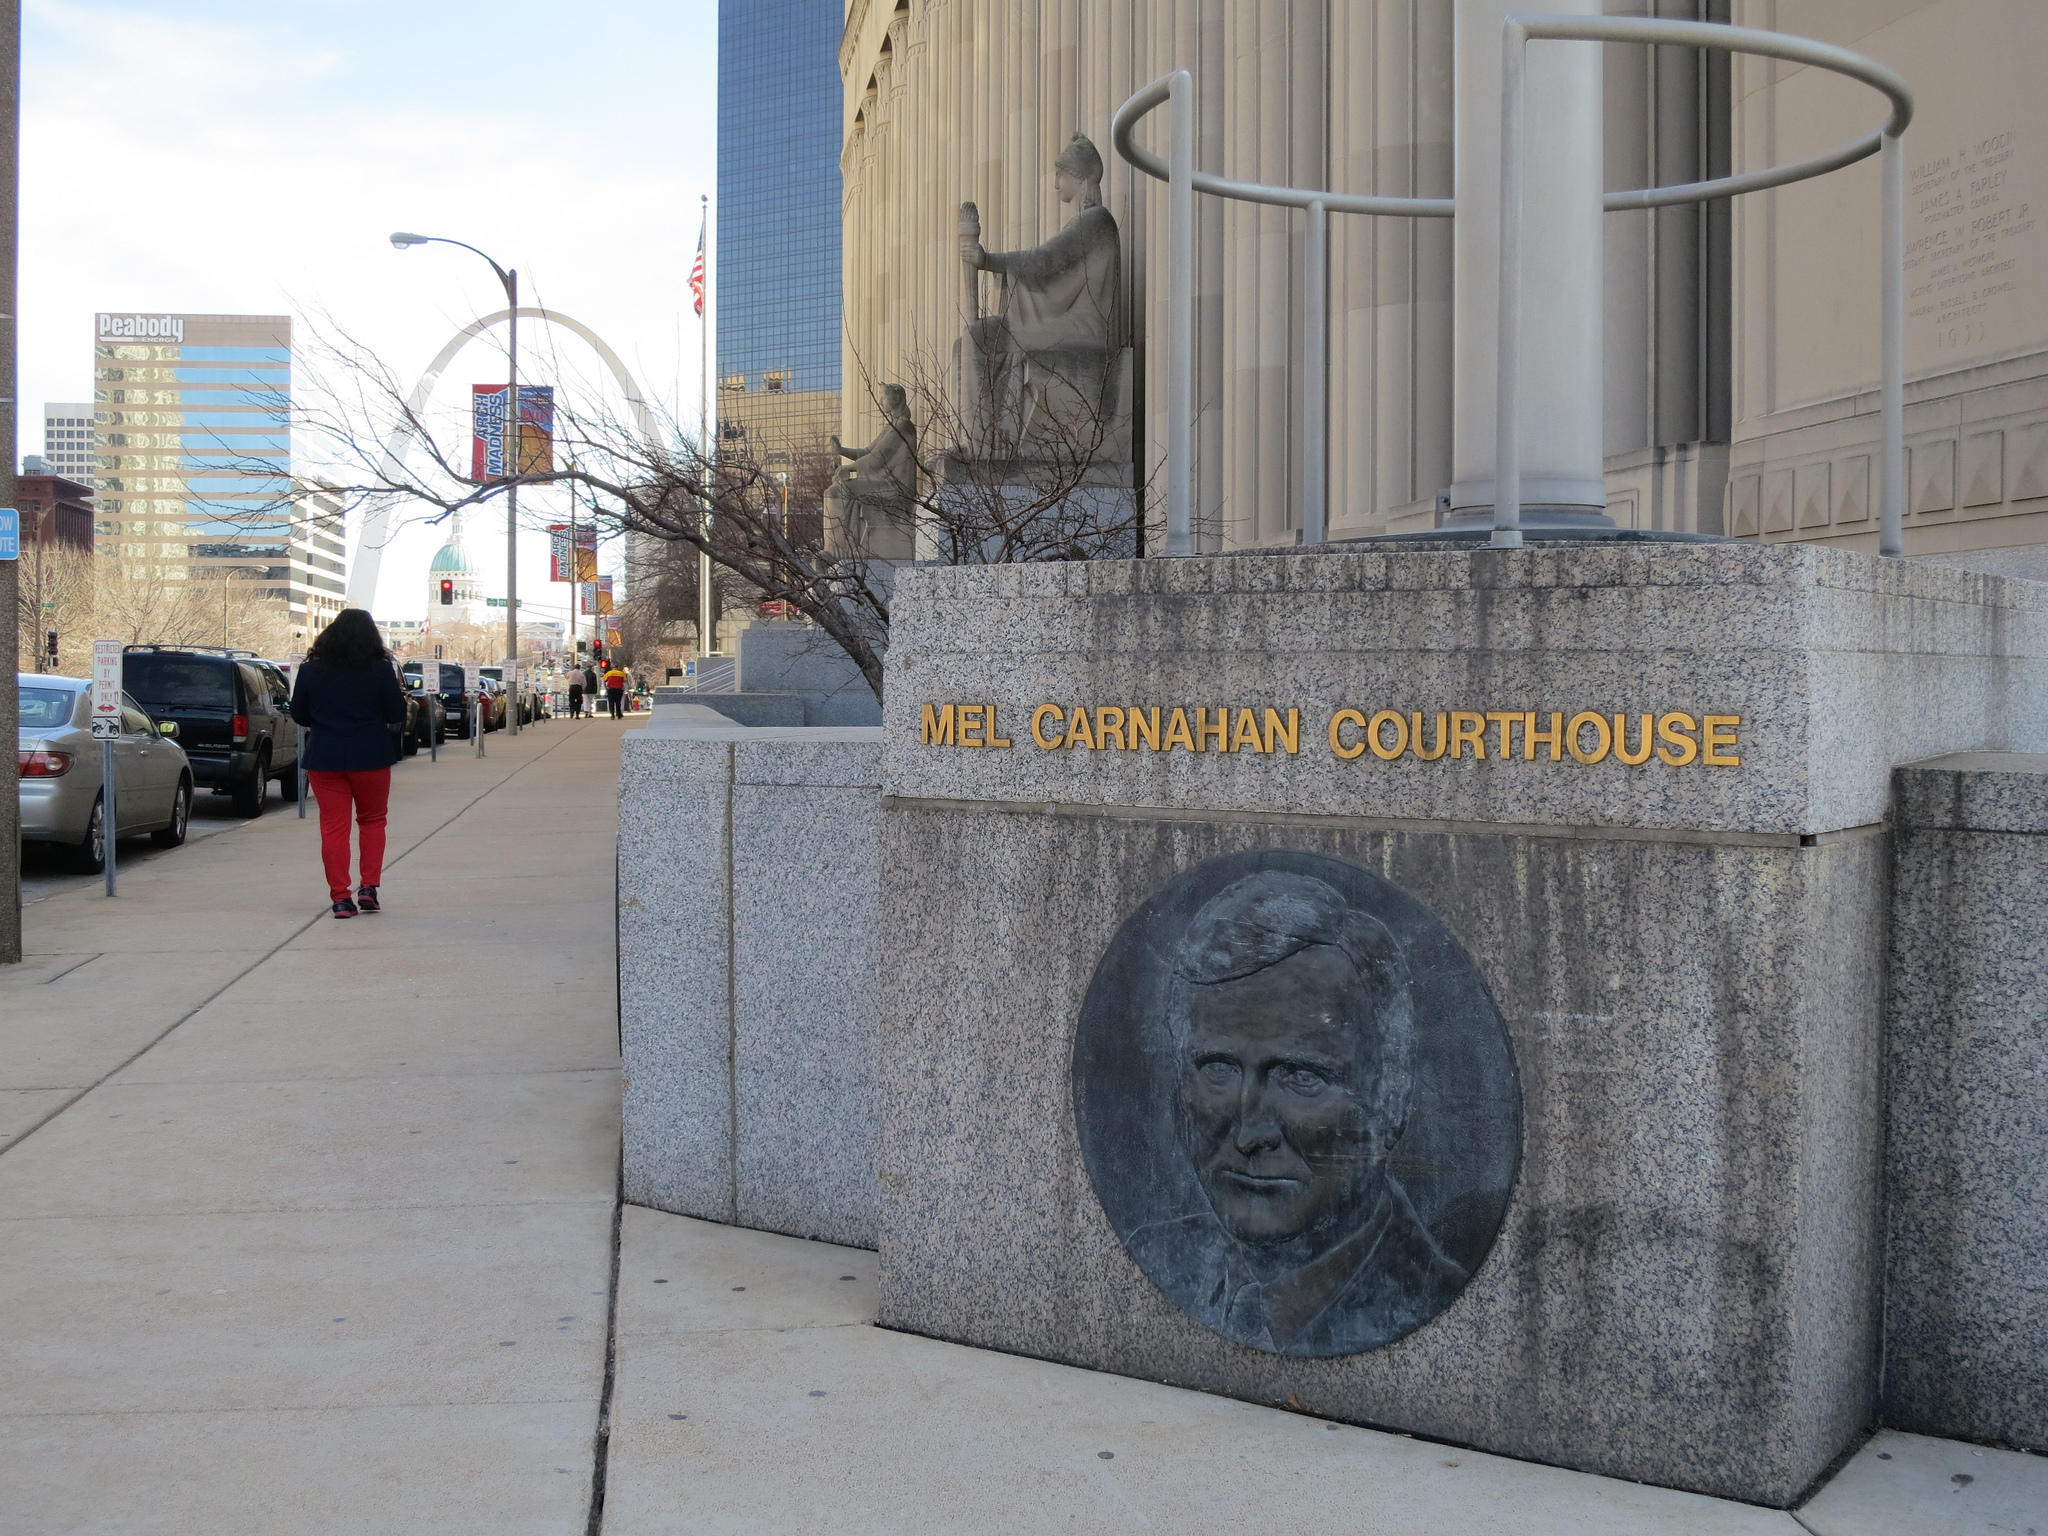 Carnahan Courthouse in downtown St. Louis is home to the St. Louis City Distirct of the criminal justice system.  PAUL SABLEMAN VIA FLICKR